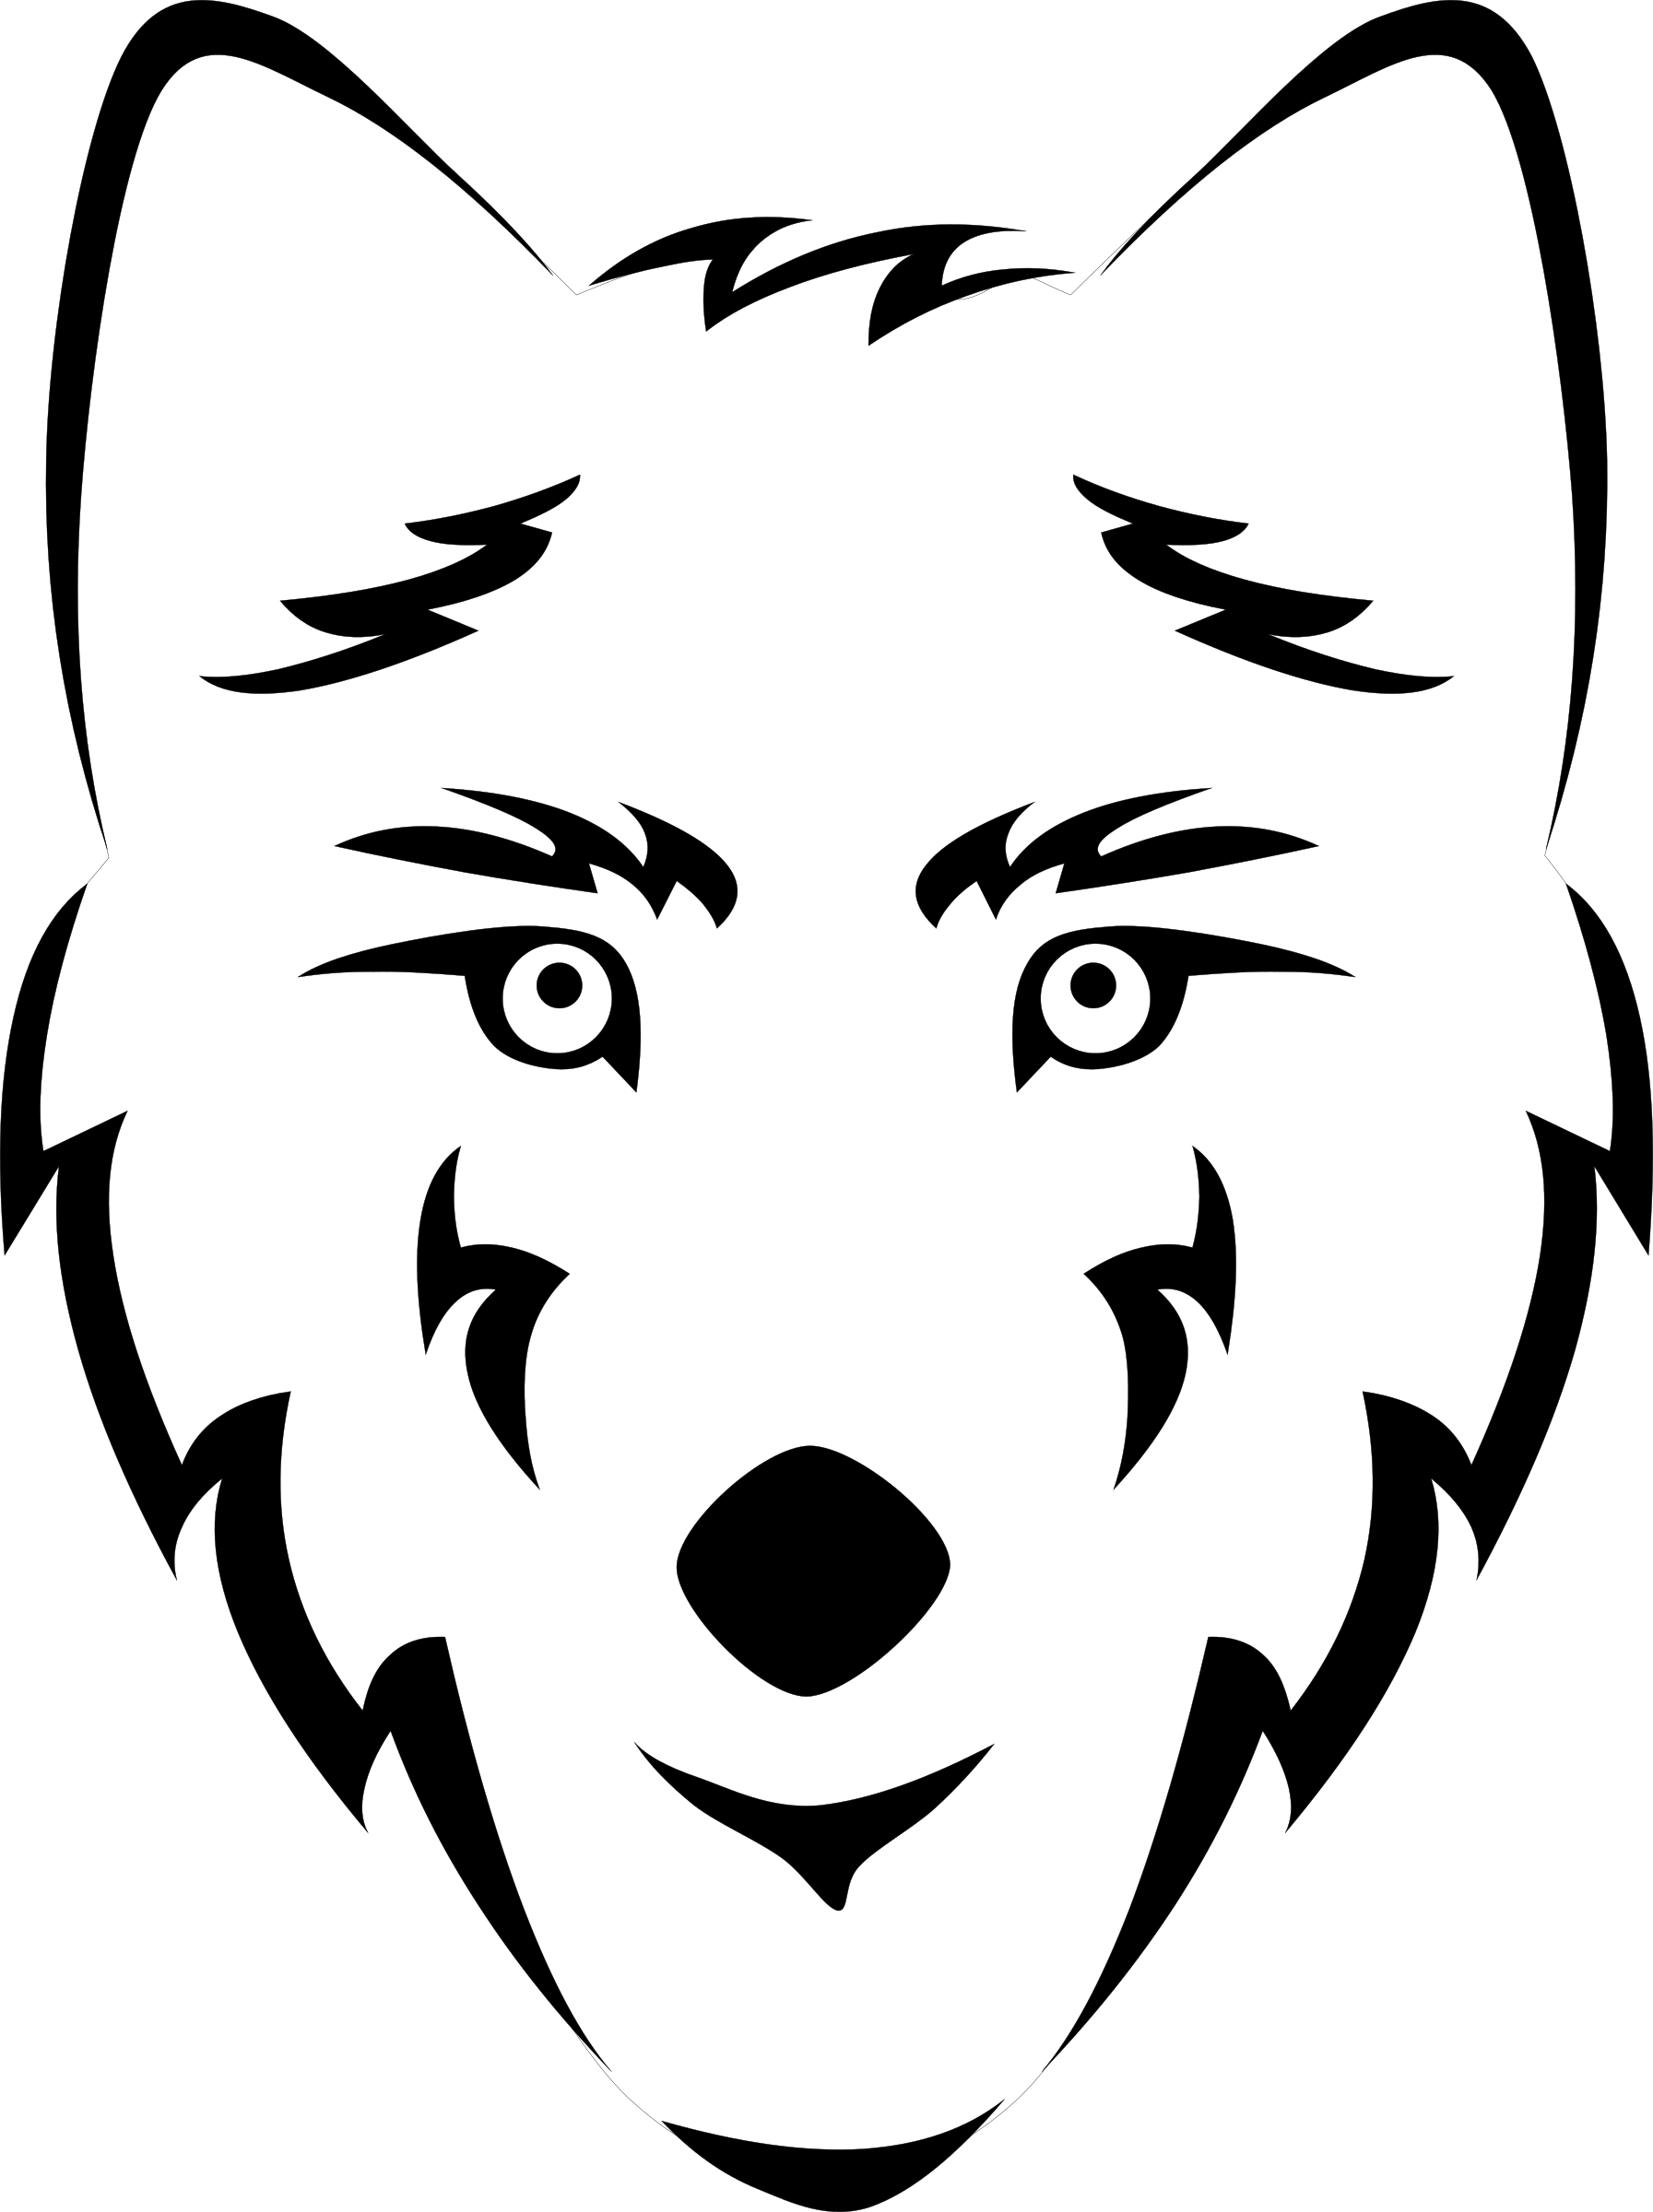 Wolves clipart nose, Wolves nose Transparent FREE for.